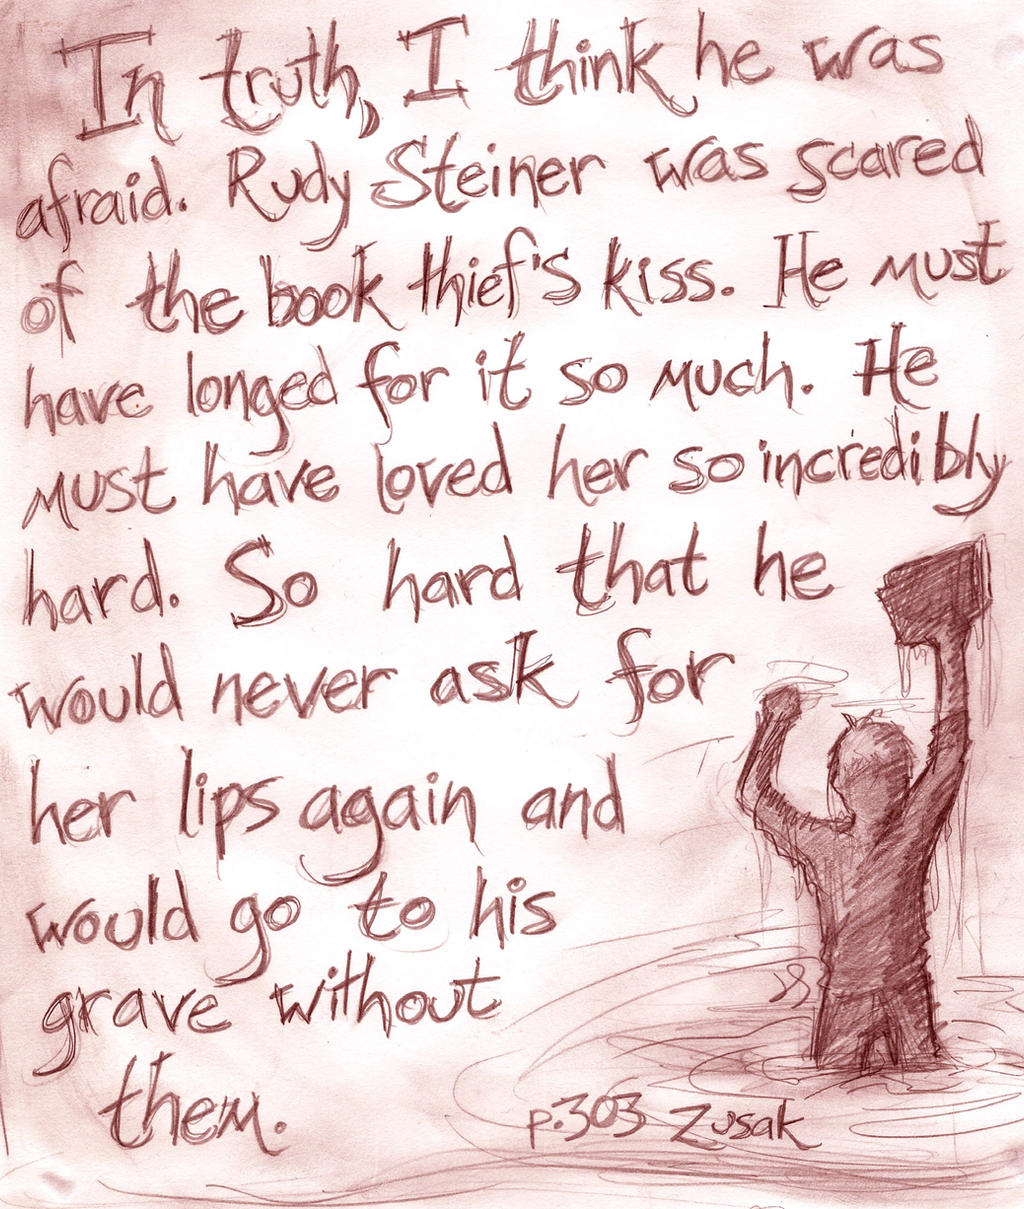 Rudy Steiner The Book Thief Quotes: The Floating Book (BOOK THIEF SPOILERS) By Evanola On